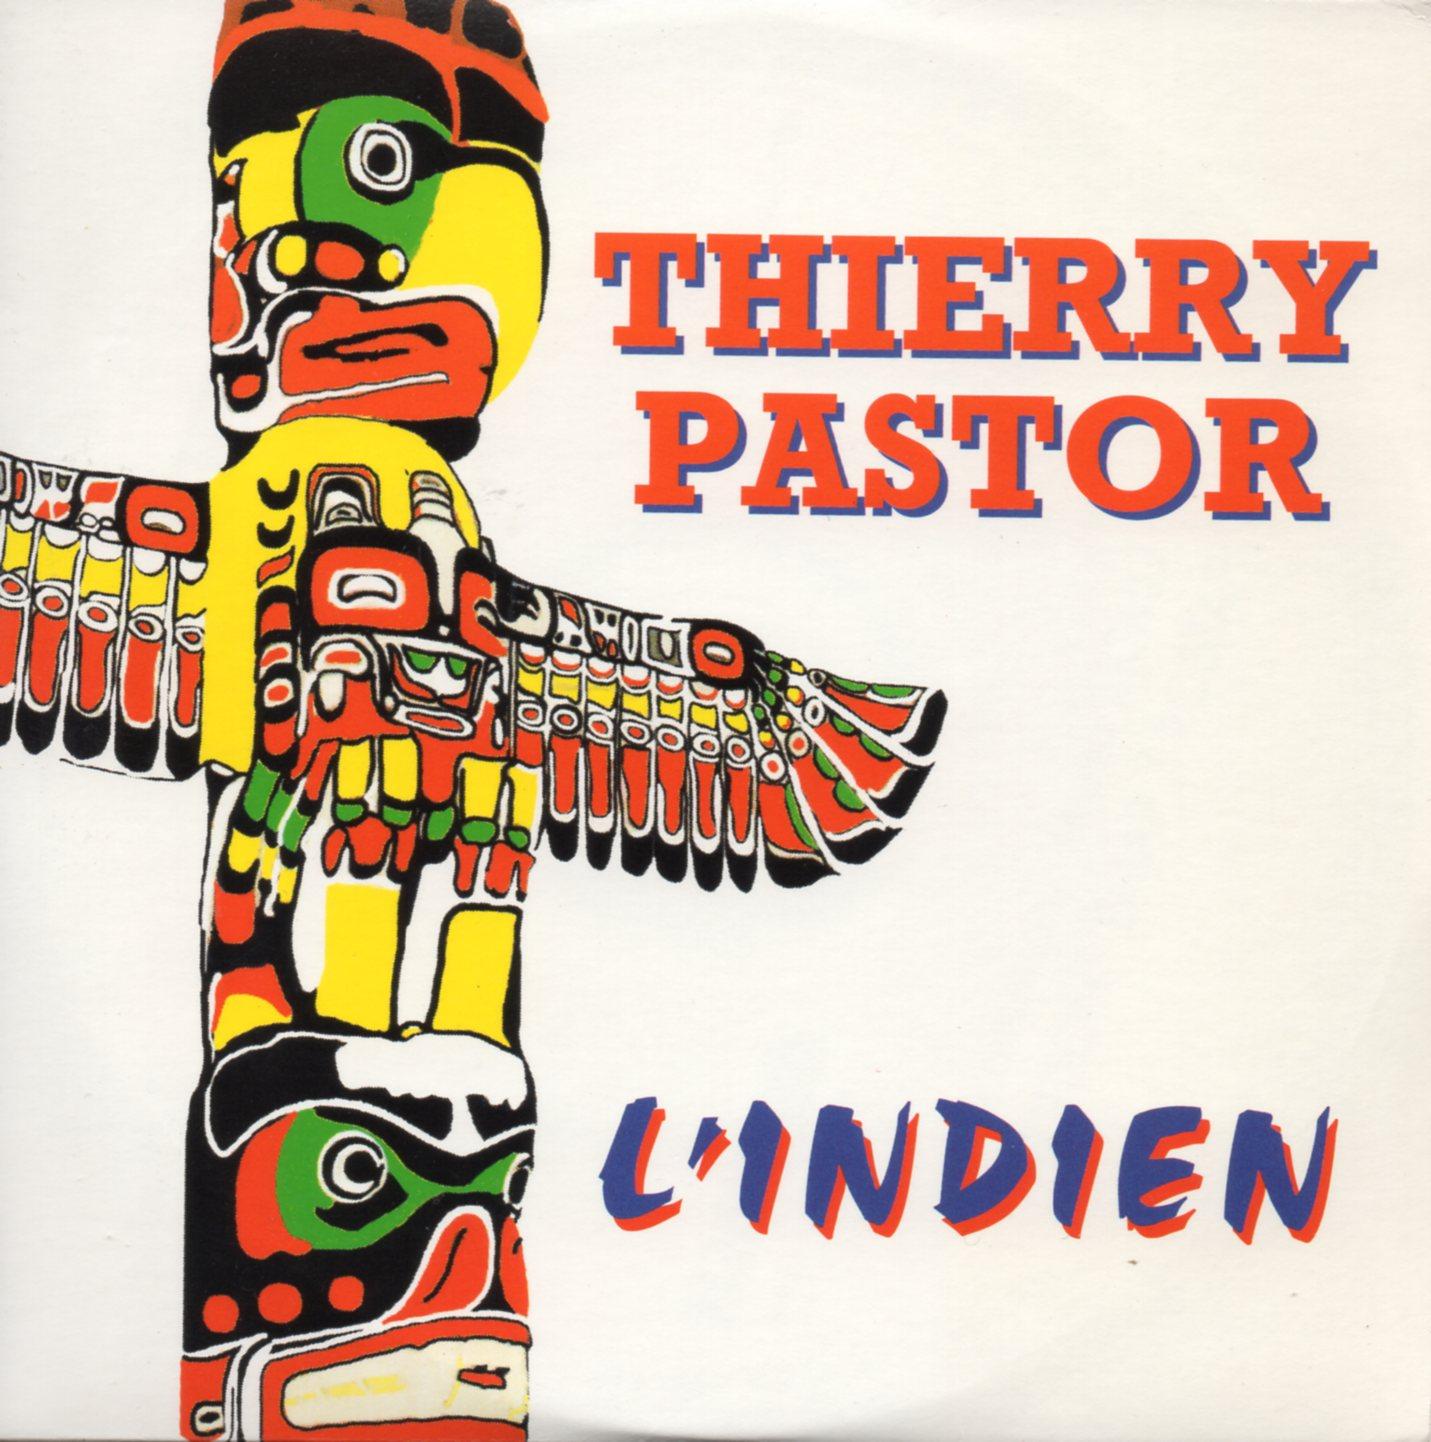 THIERRY PASTOR - L'indien 3-track CARD SLEEVE - CD single